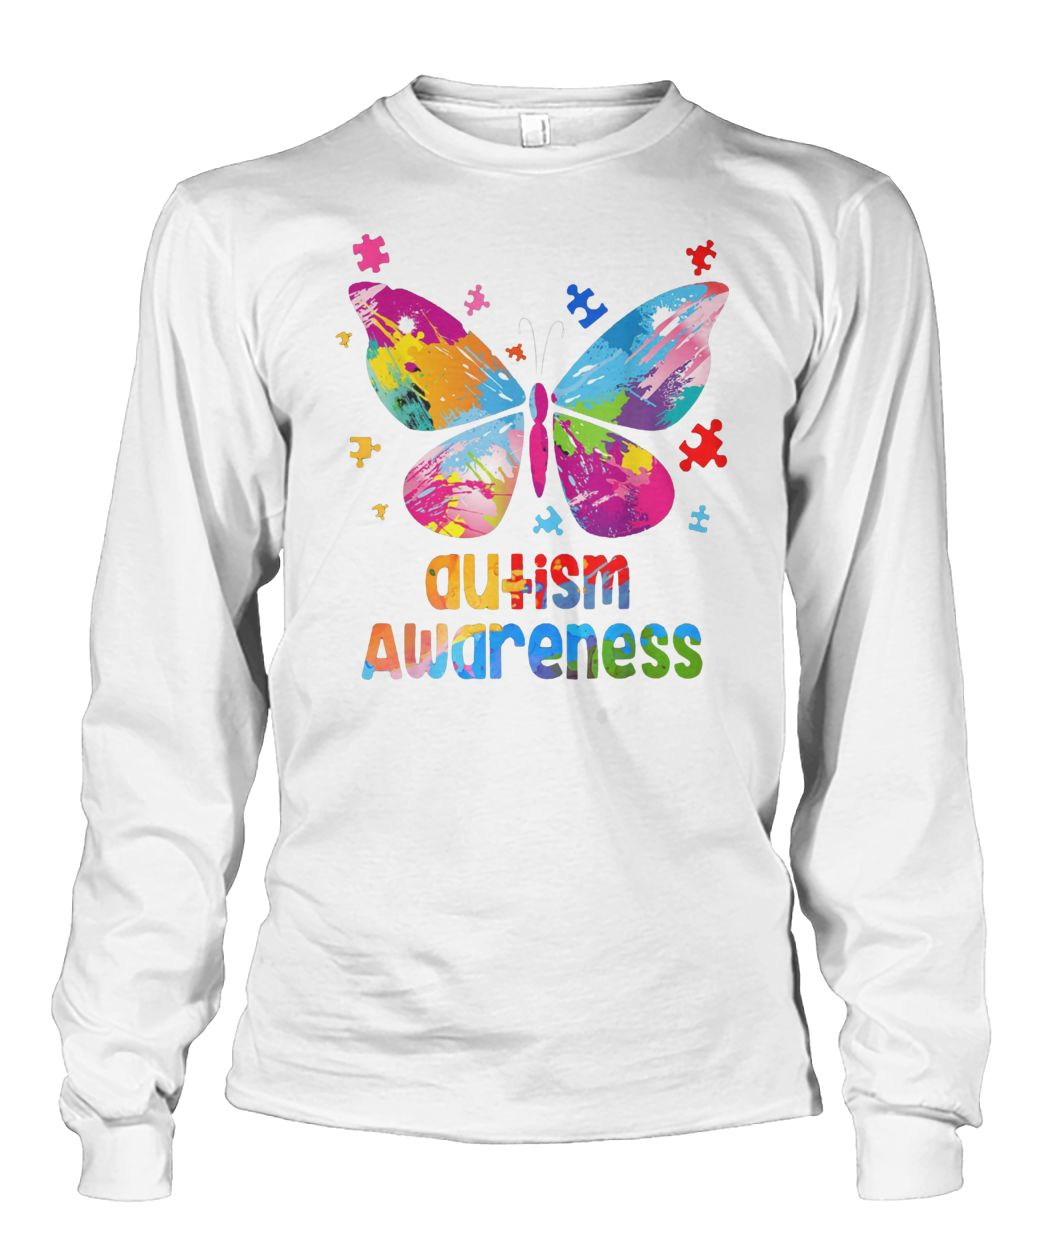 Colorful butterfly autism awareness unisex long sleeve